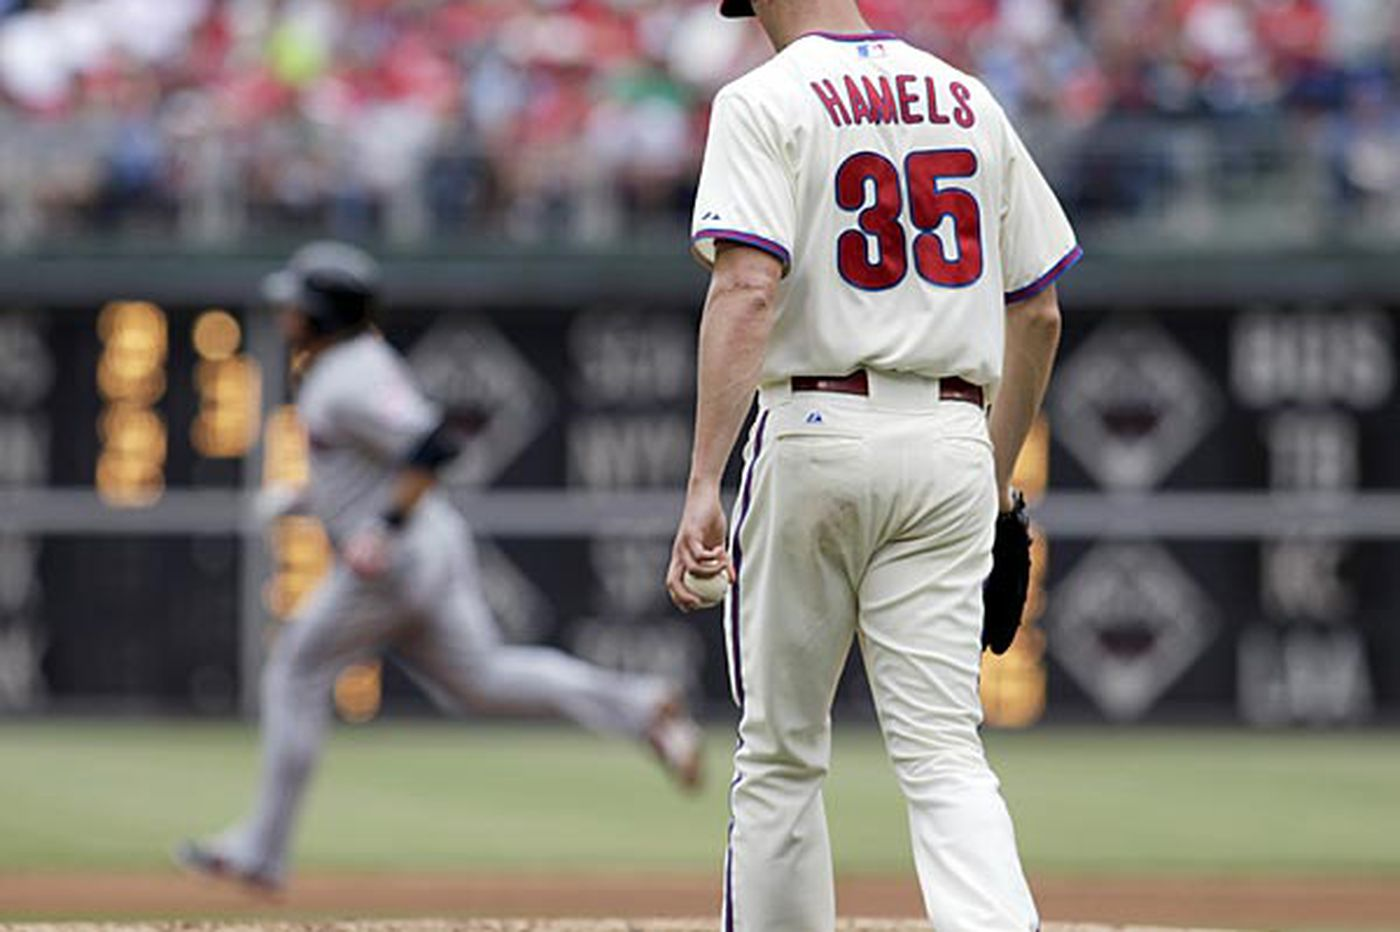 No surprise here: Phillies are not contenders